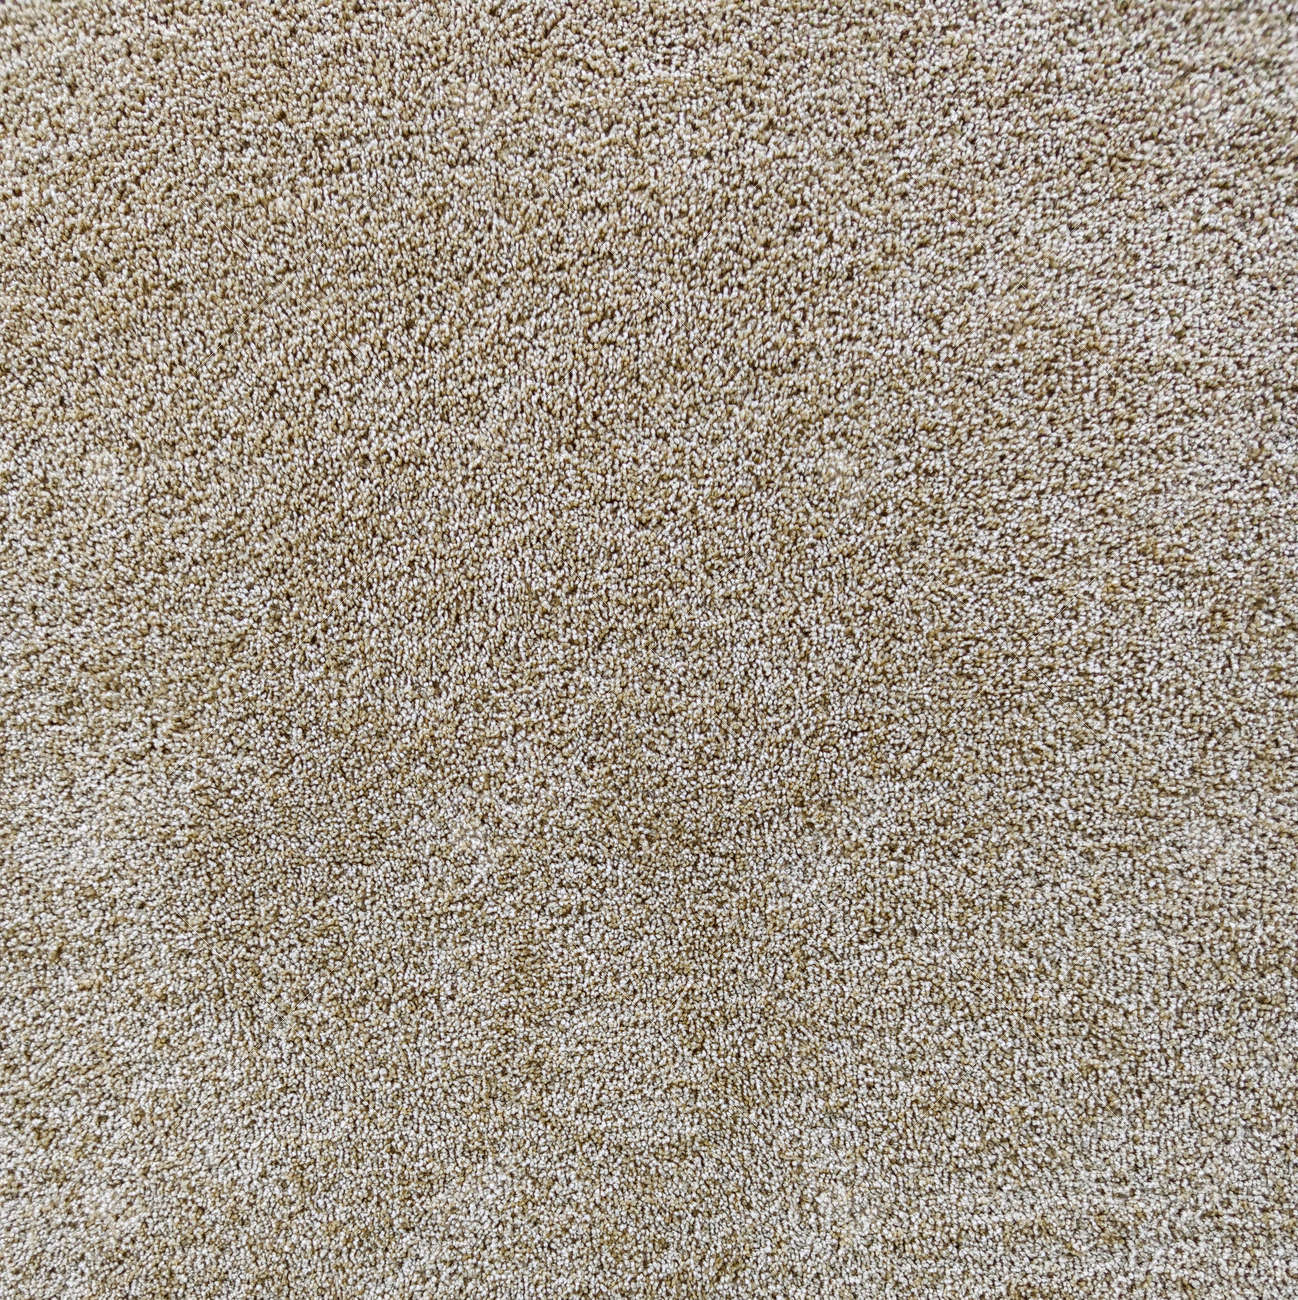 Textured carpet background. Beautiful background for designer collages. - 154278514